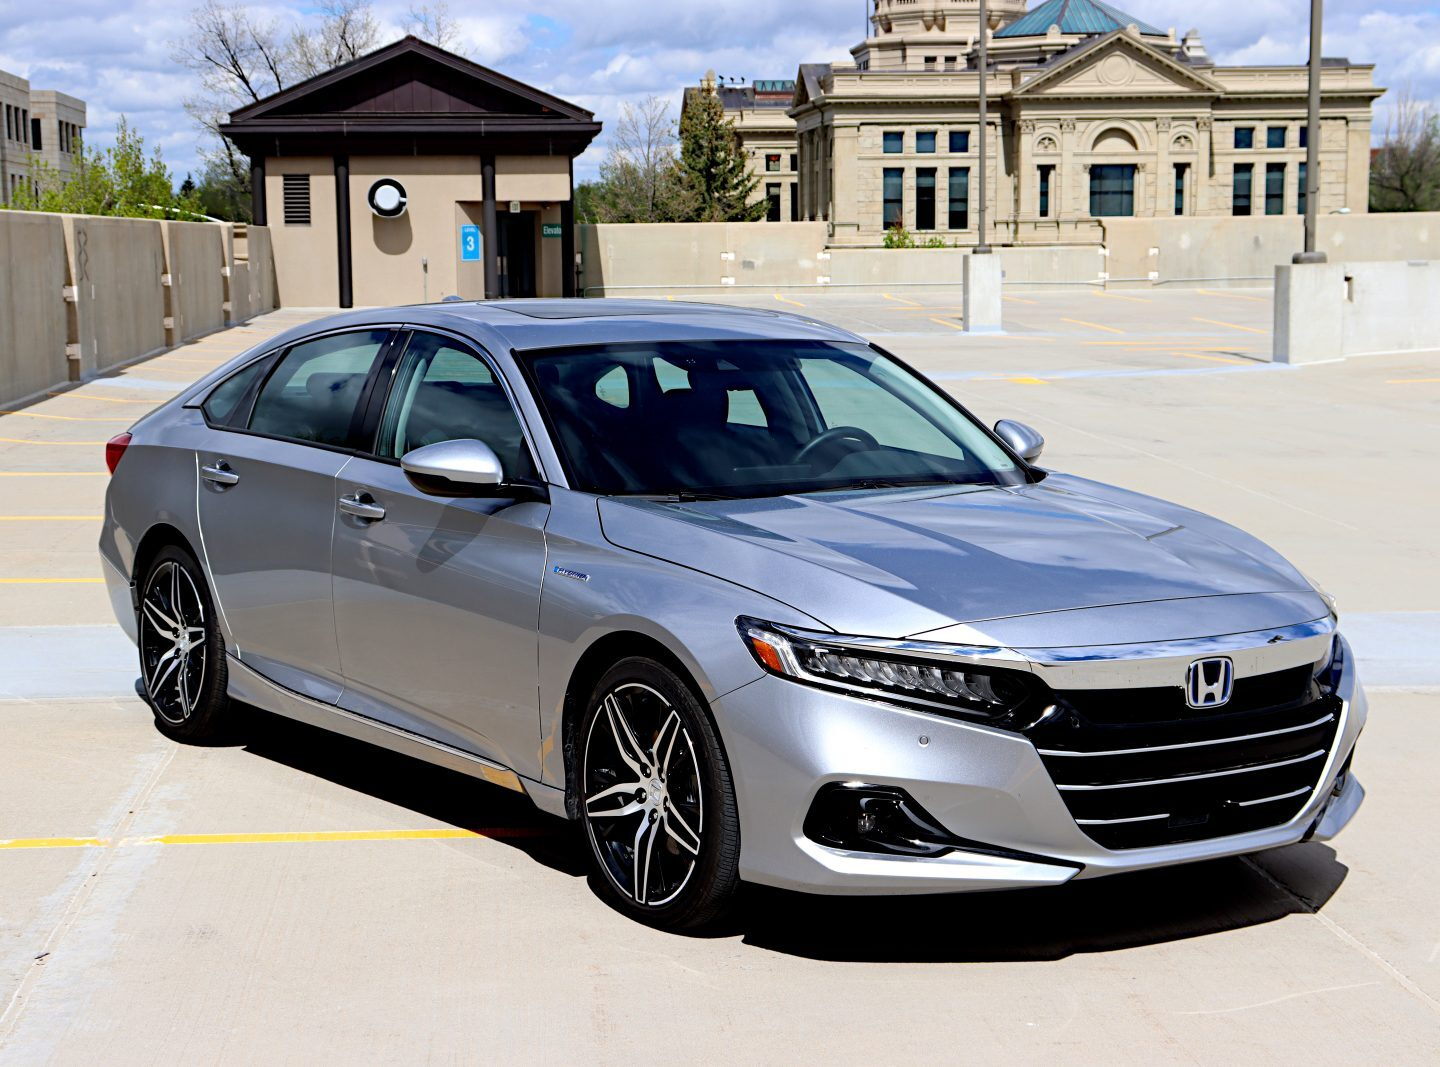 Review: 2021 Honda Accord Hybrid is, well, a hybrid Accord